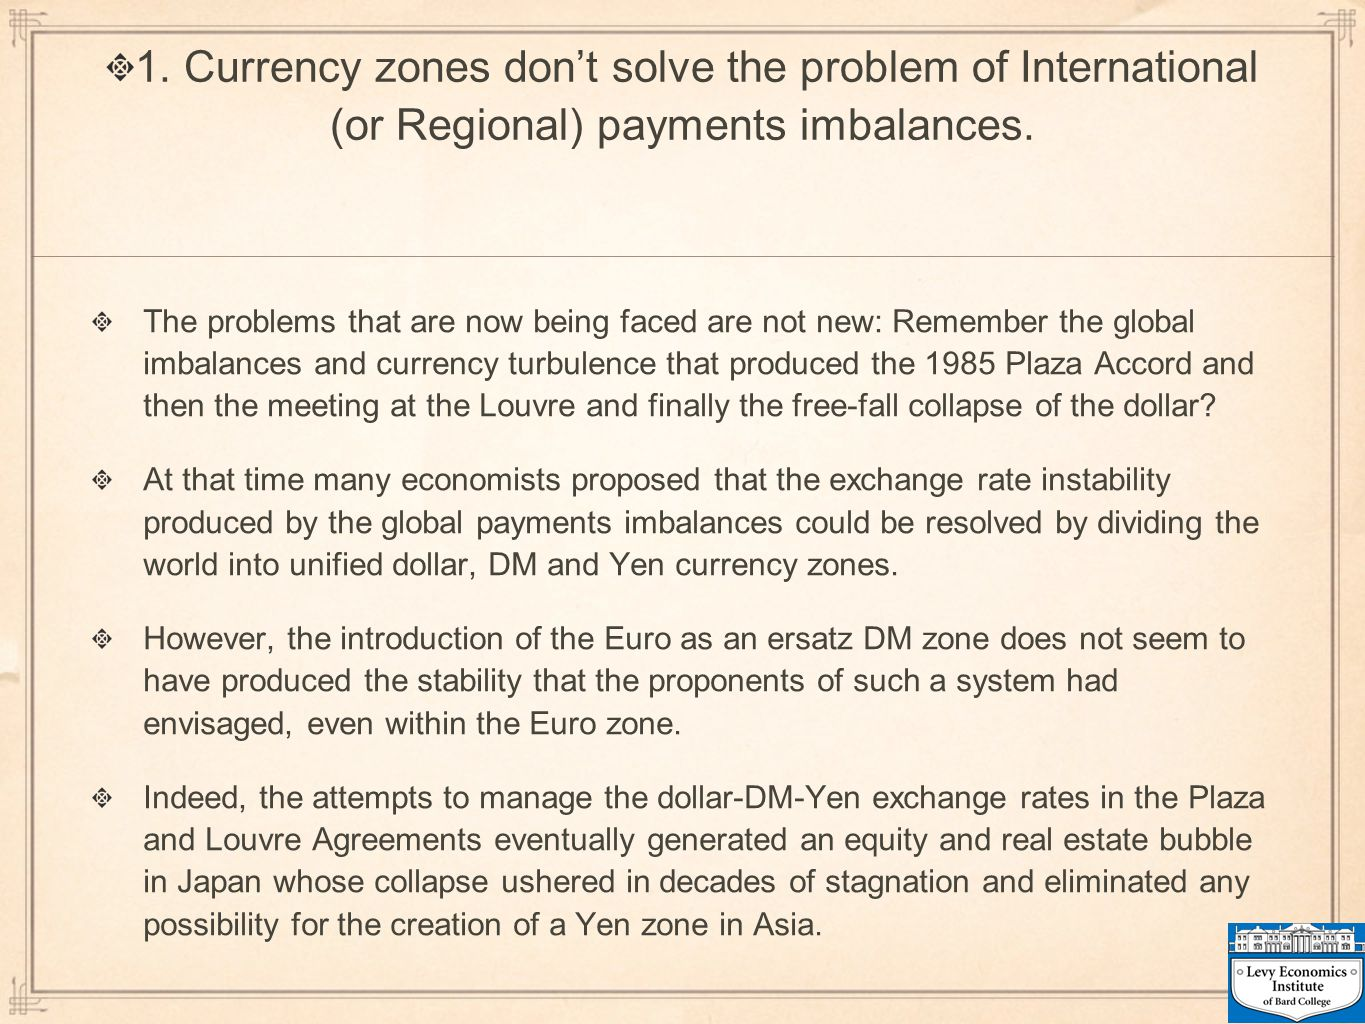 1. Currency zones don't solve the problem of International (or Regional) payments imbalances.